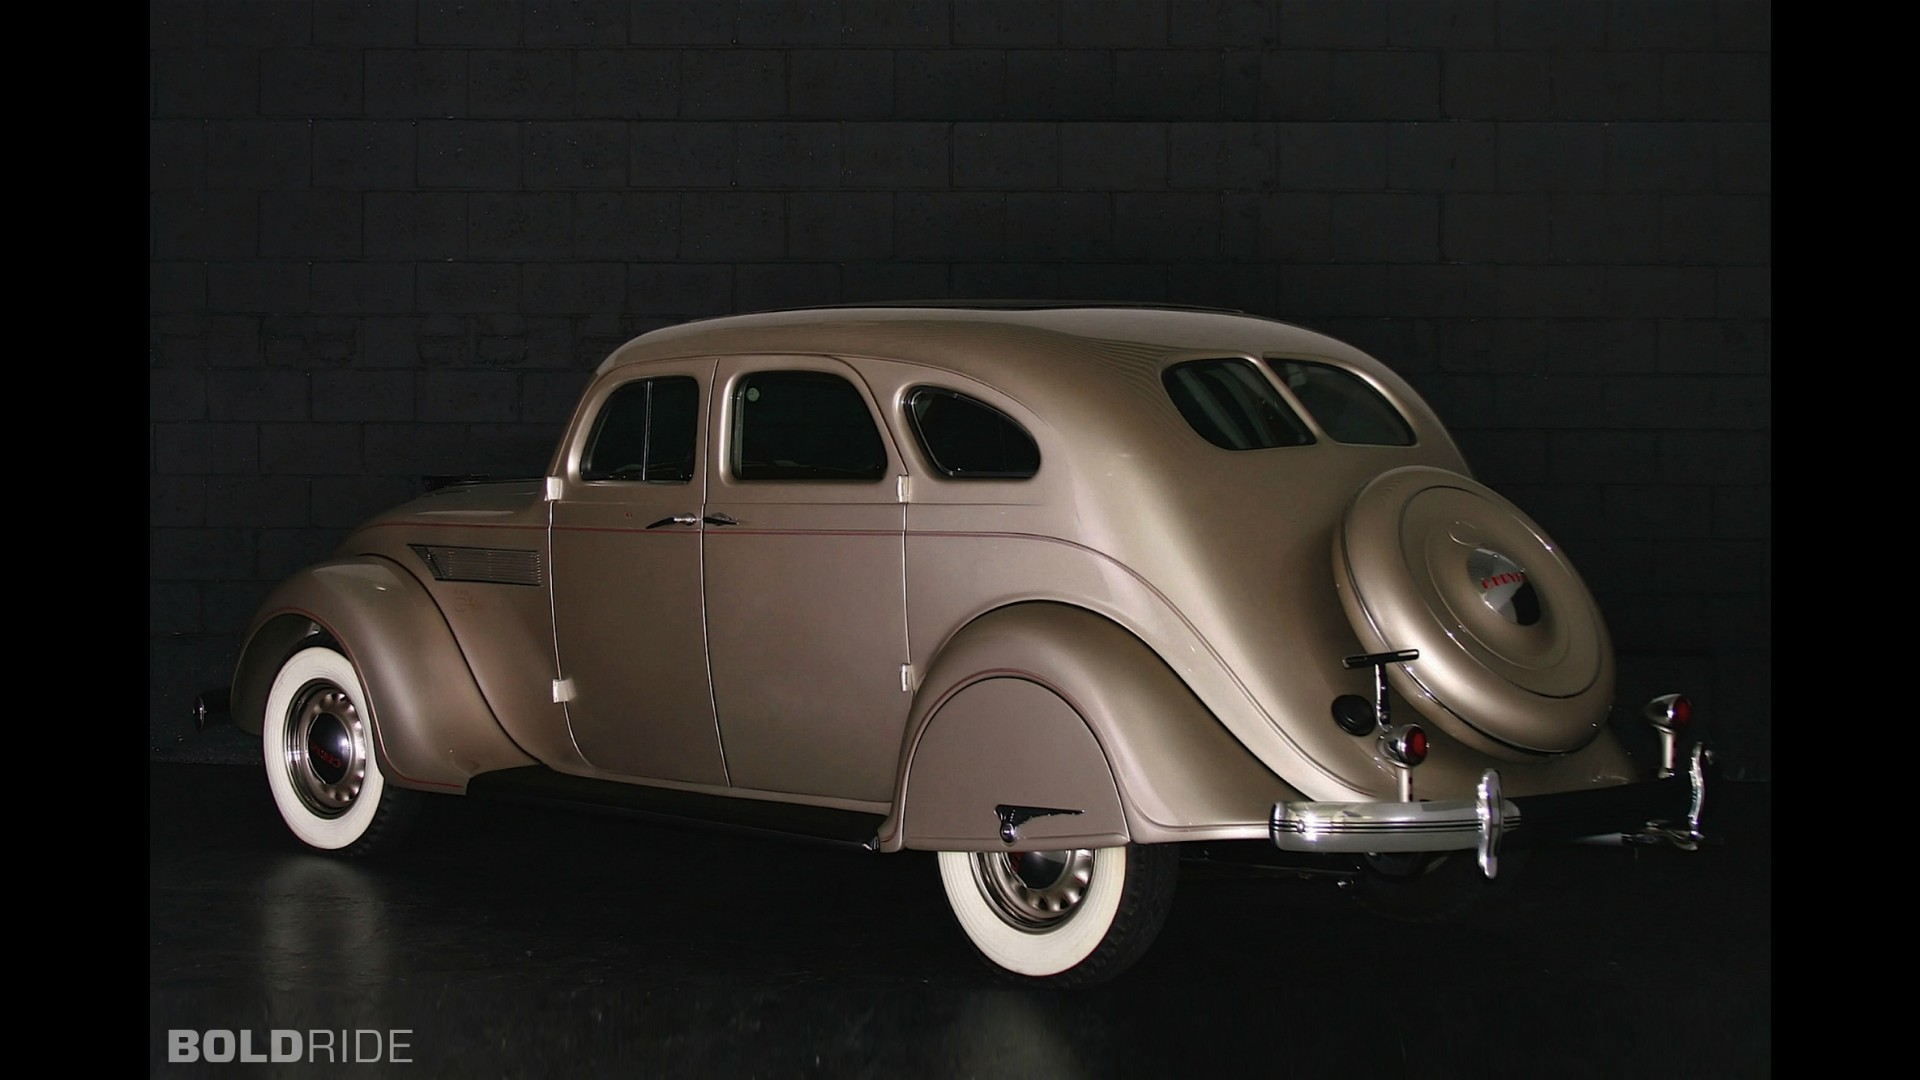 Chrysler Airflow 8 C-1 Sedan